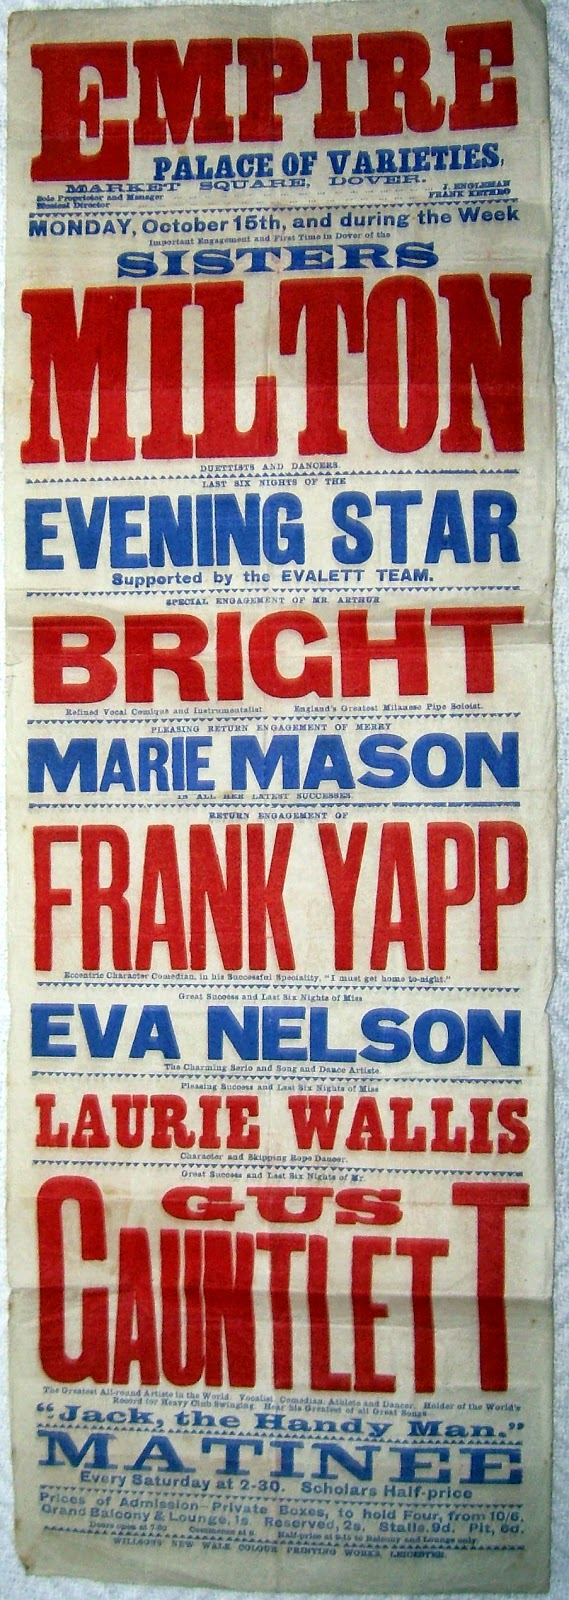 Promotional banner showing Sisters Milton performing at the Empire Palace of Varieties